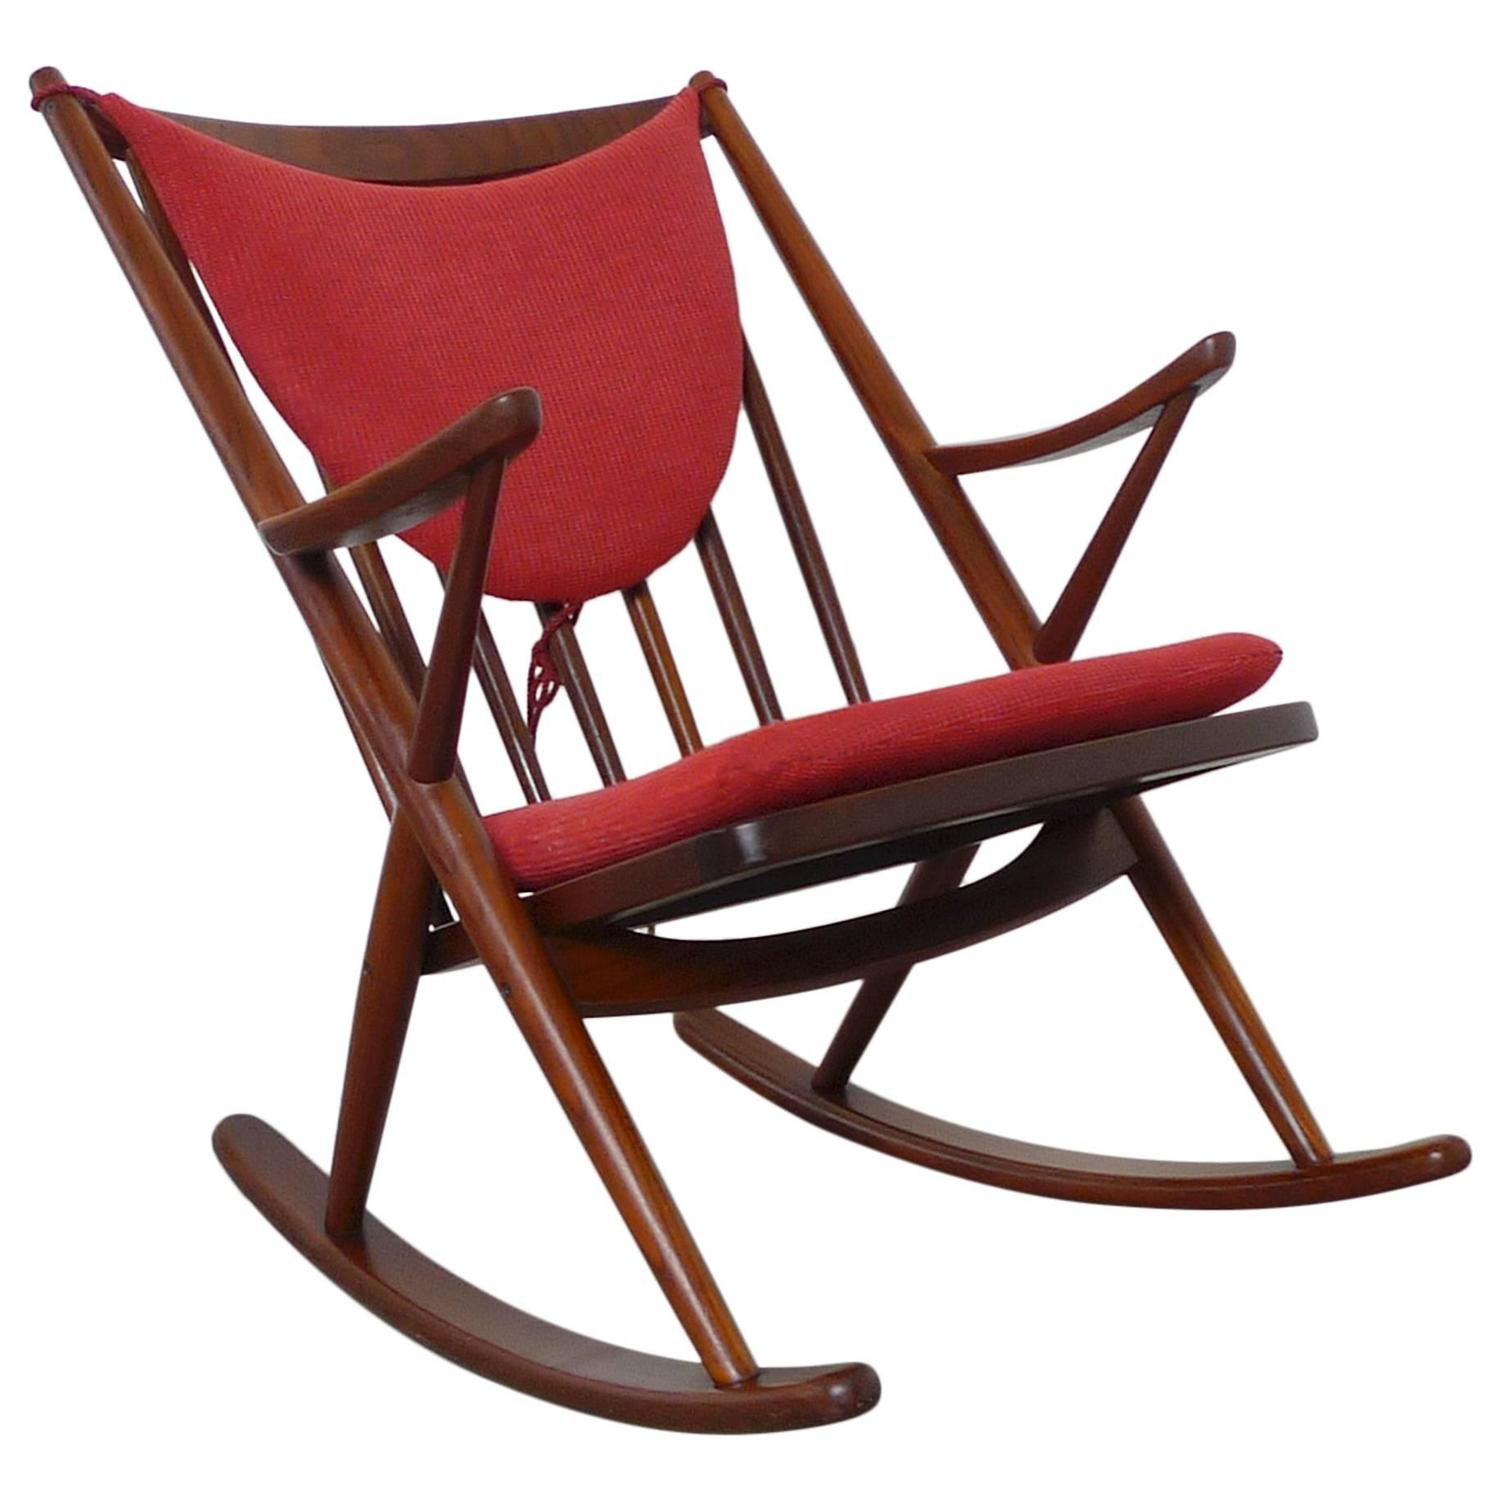 Teak Rocking Chair by Frank Reenskaug for Bramin Denmark 1958